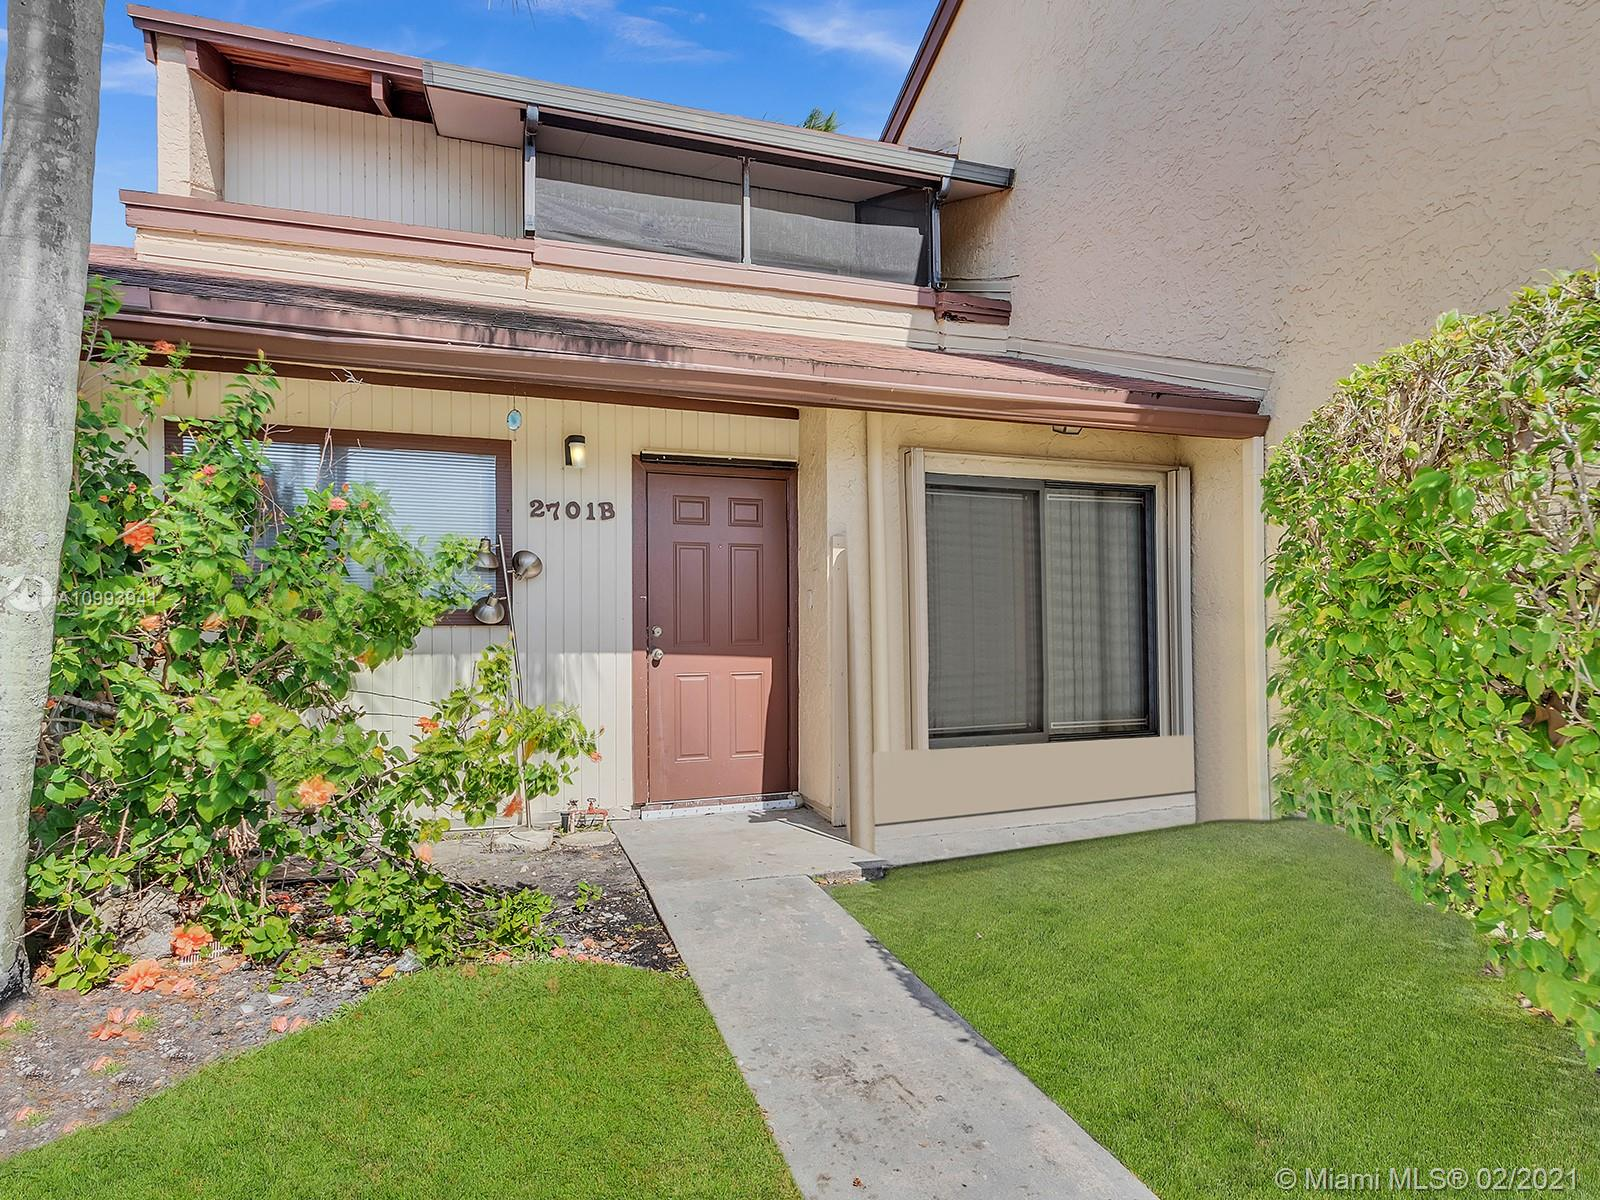 Calling all investors or end users! Beautiful townhouse for sale, 2 bedrooms and 2 bathrooms over looking the beautiful lake in Hollywood! Lease once a year. Currently rented for $2,100. Tenant can go out within 60 days notice